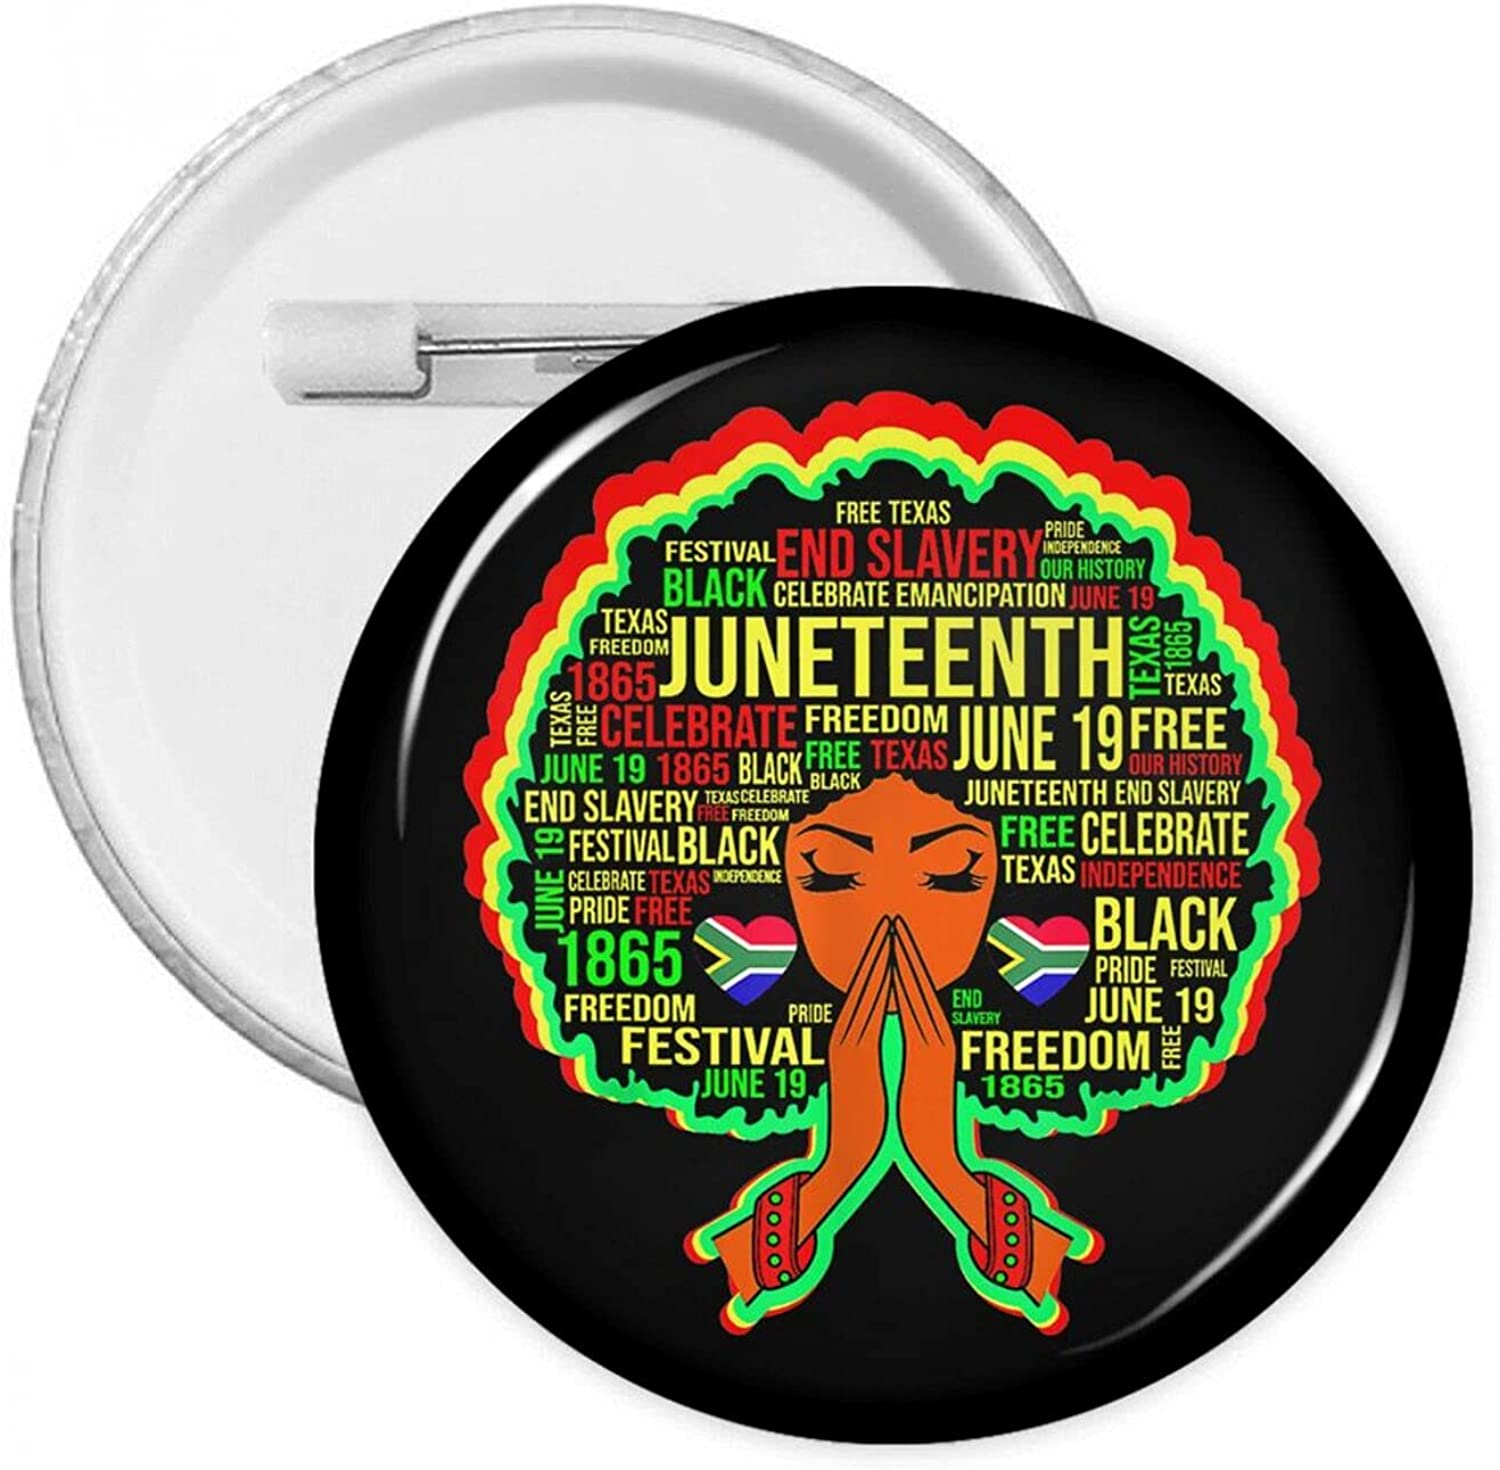 Free Ish Since 1865 Juneteenth African American Pride Round Pins Button Badge Brooch Decors for Backpacks Clothes Hats Bags